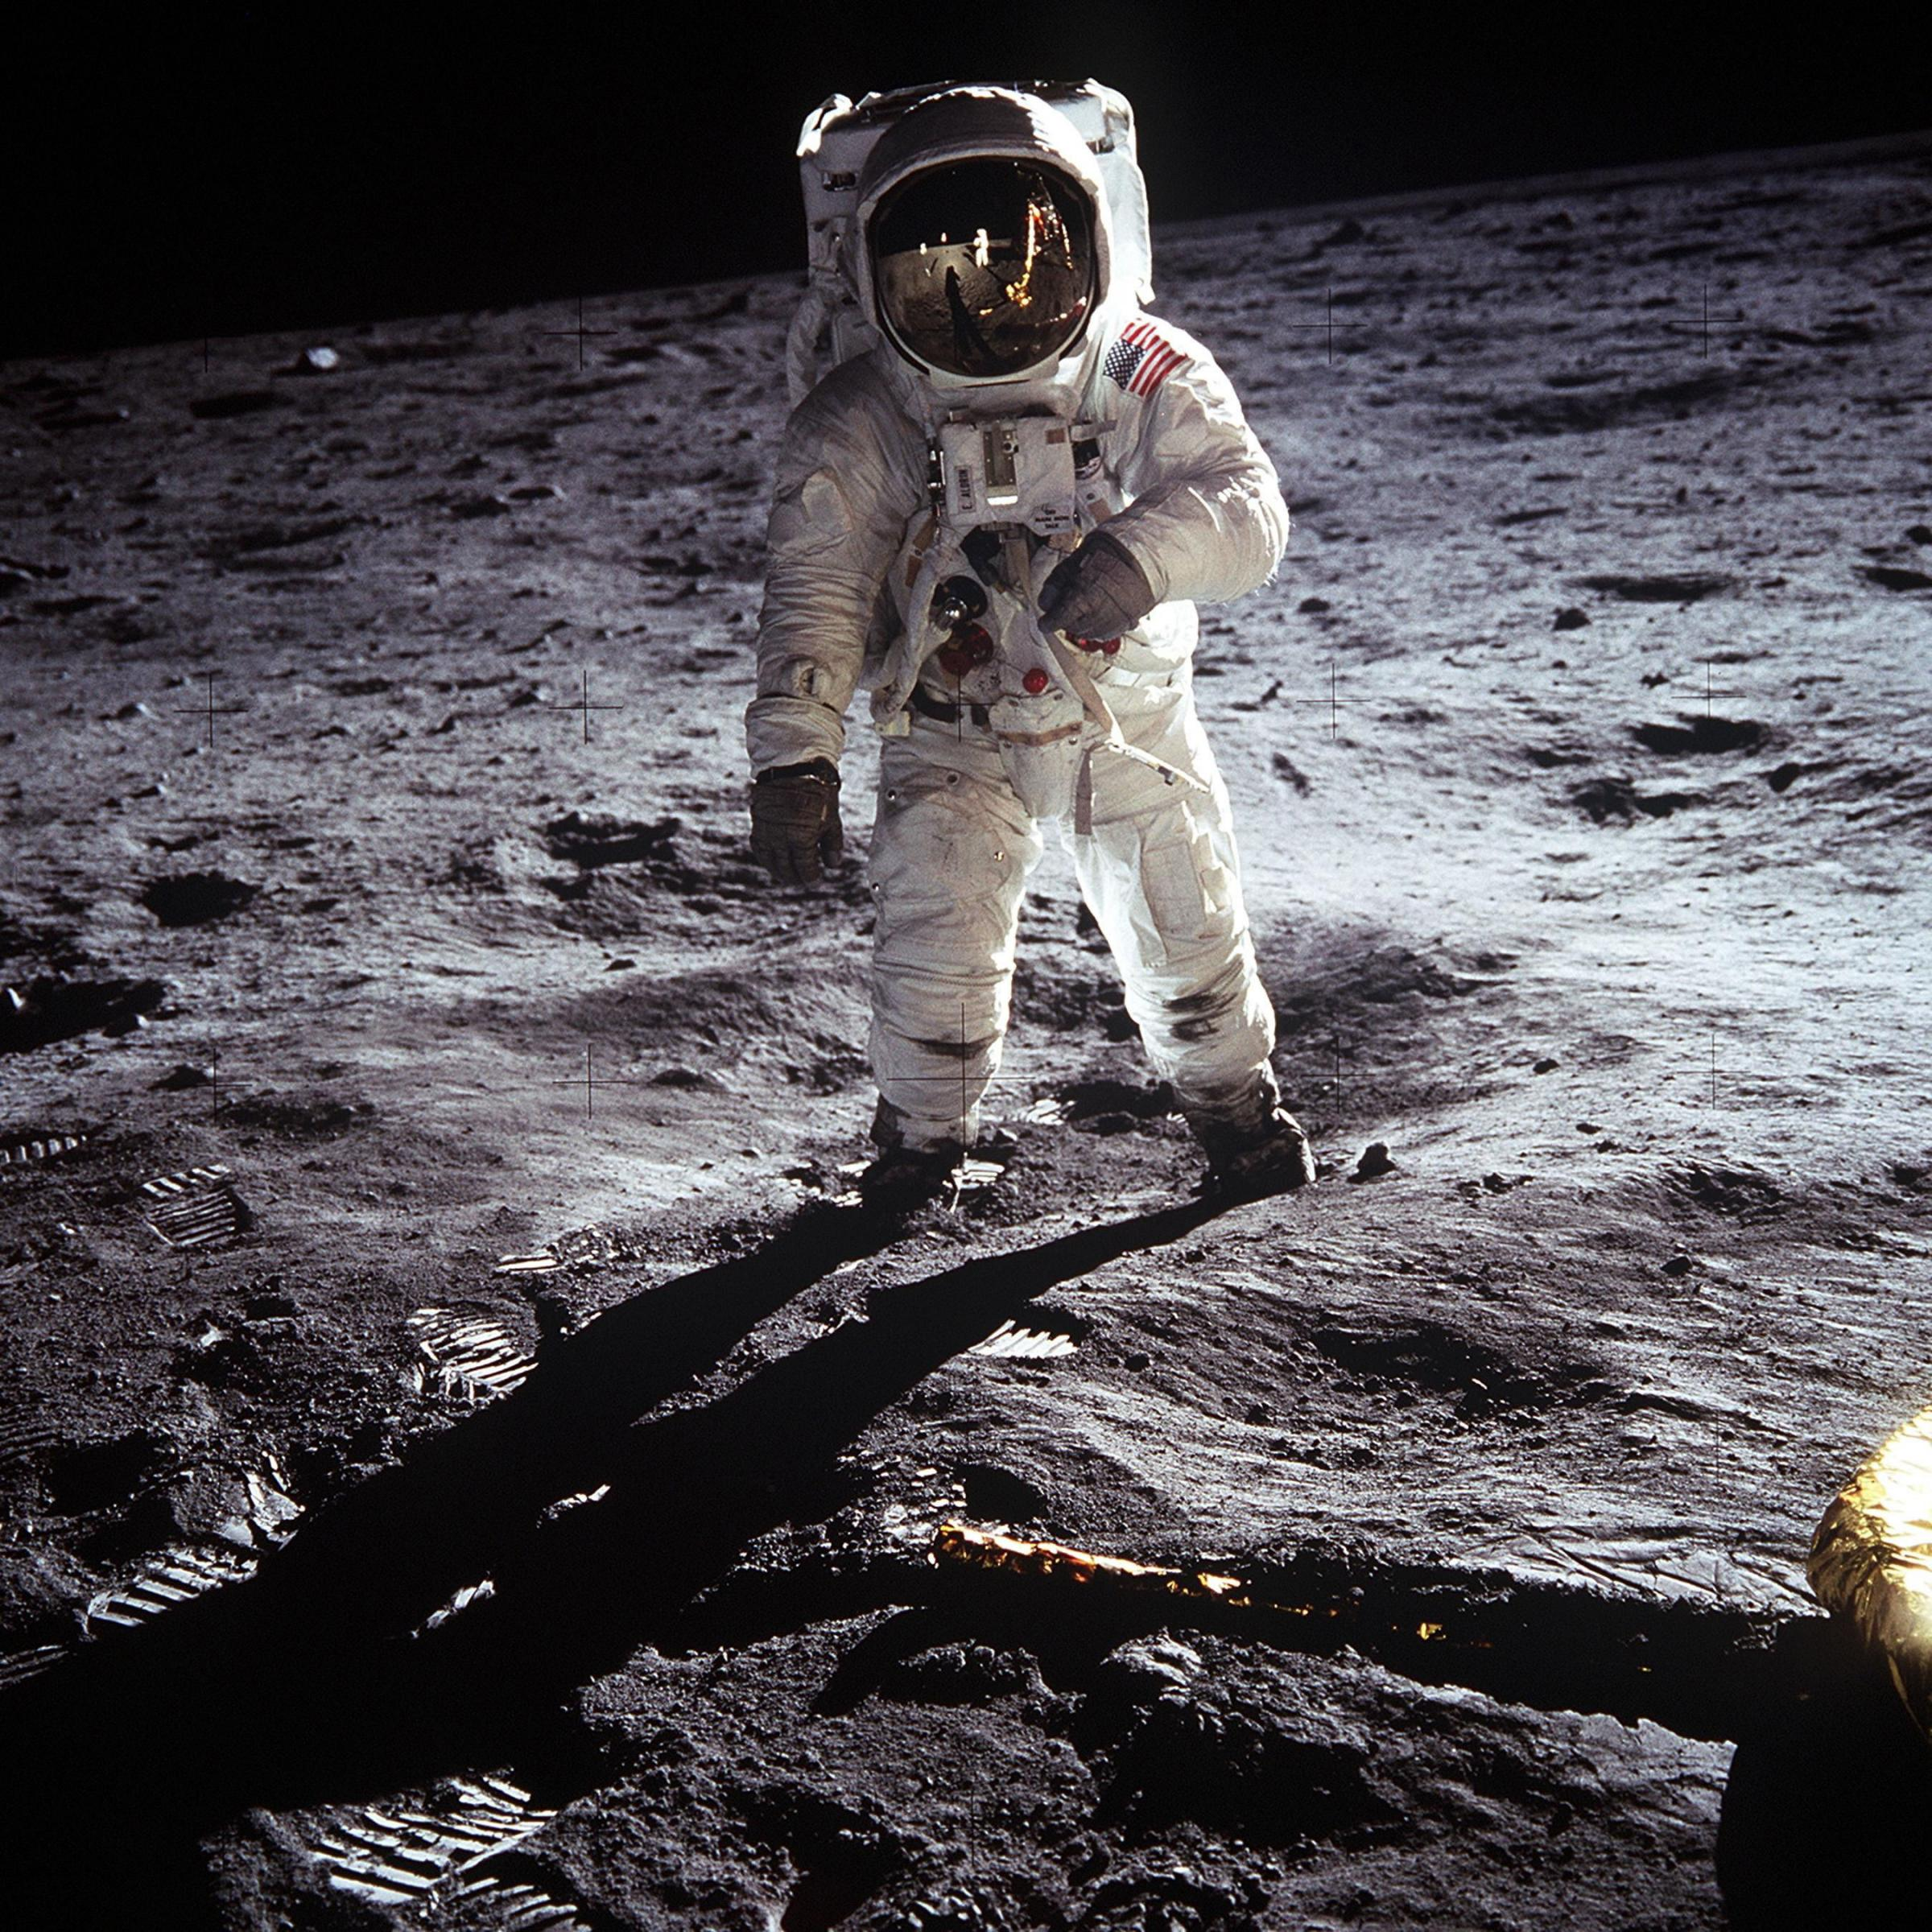 """Moon landing anniversary prompts our own """"where were you?"""" recollections"""